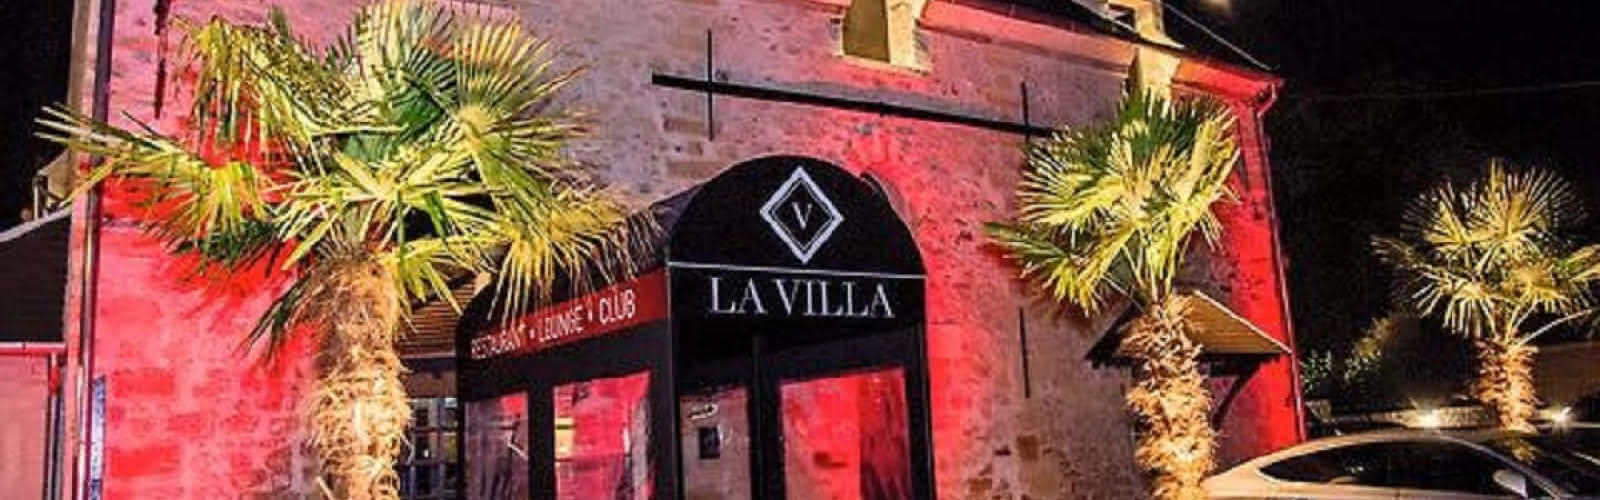 La Villa - Restaurant & Nightclub